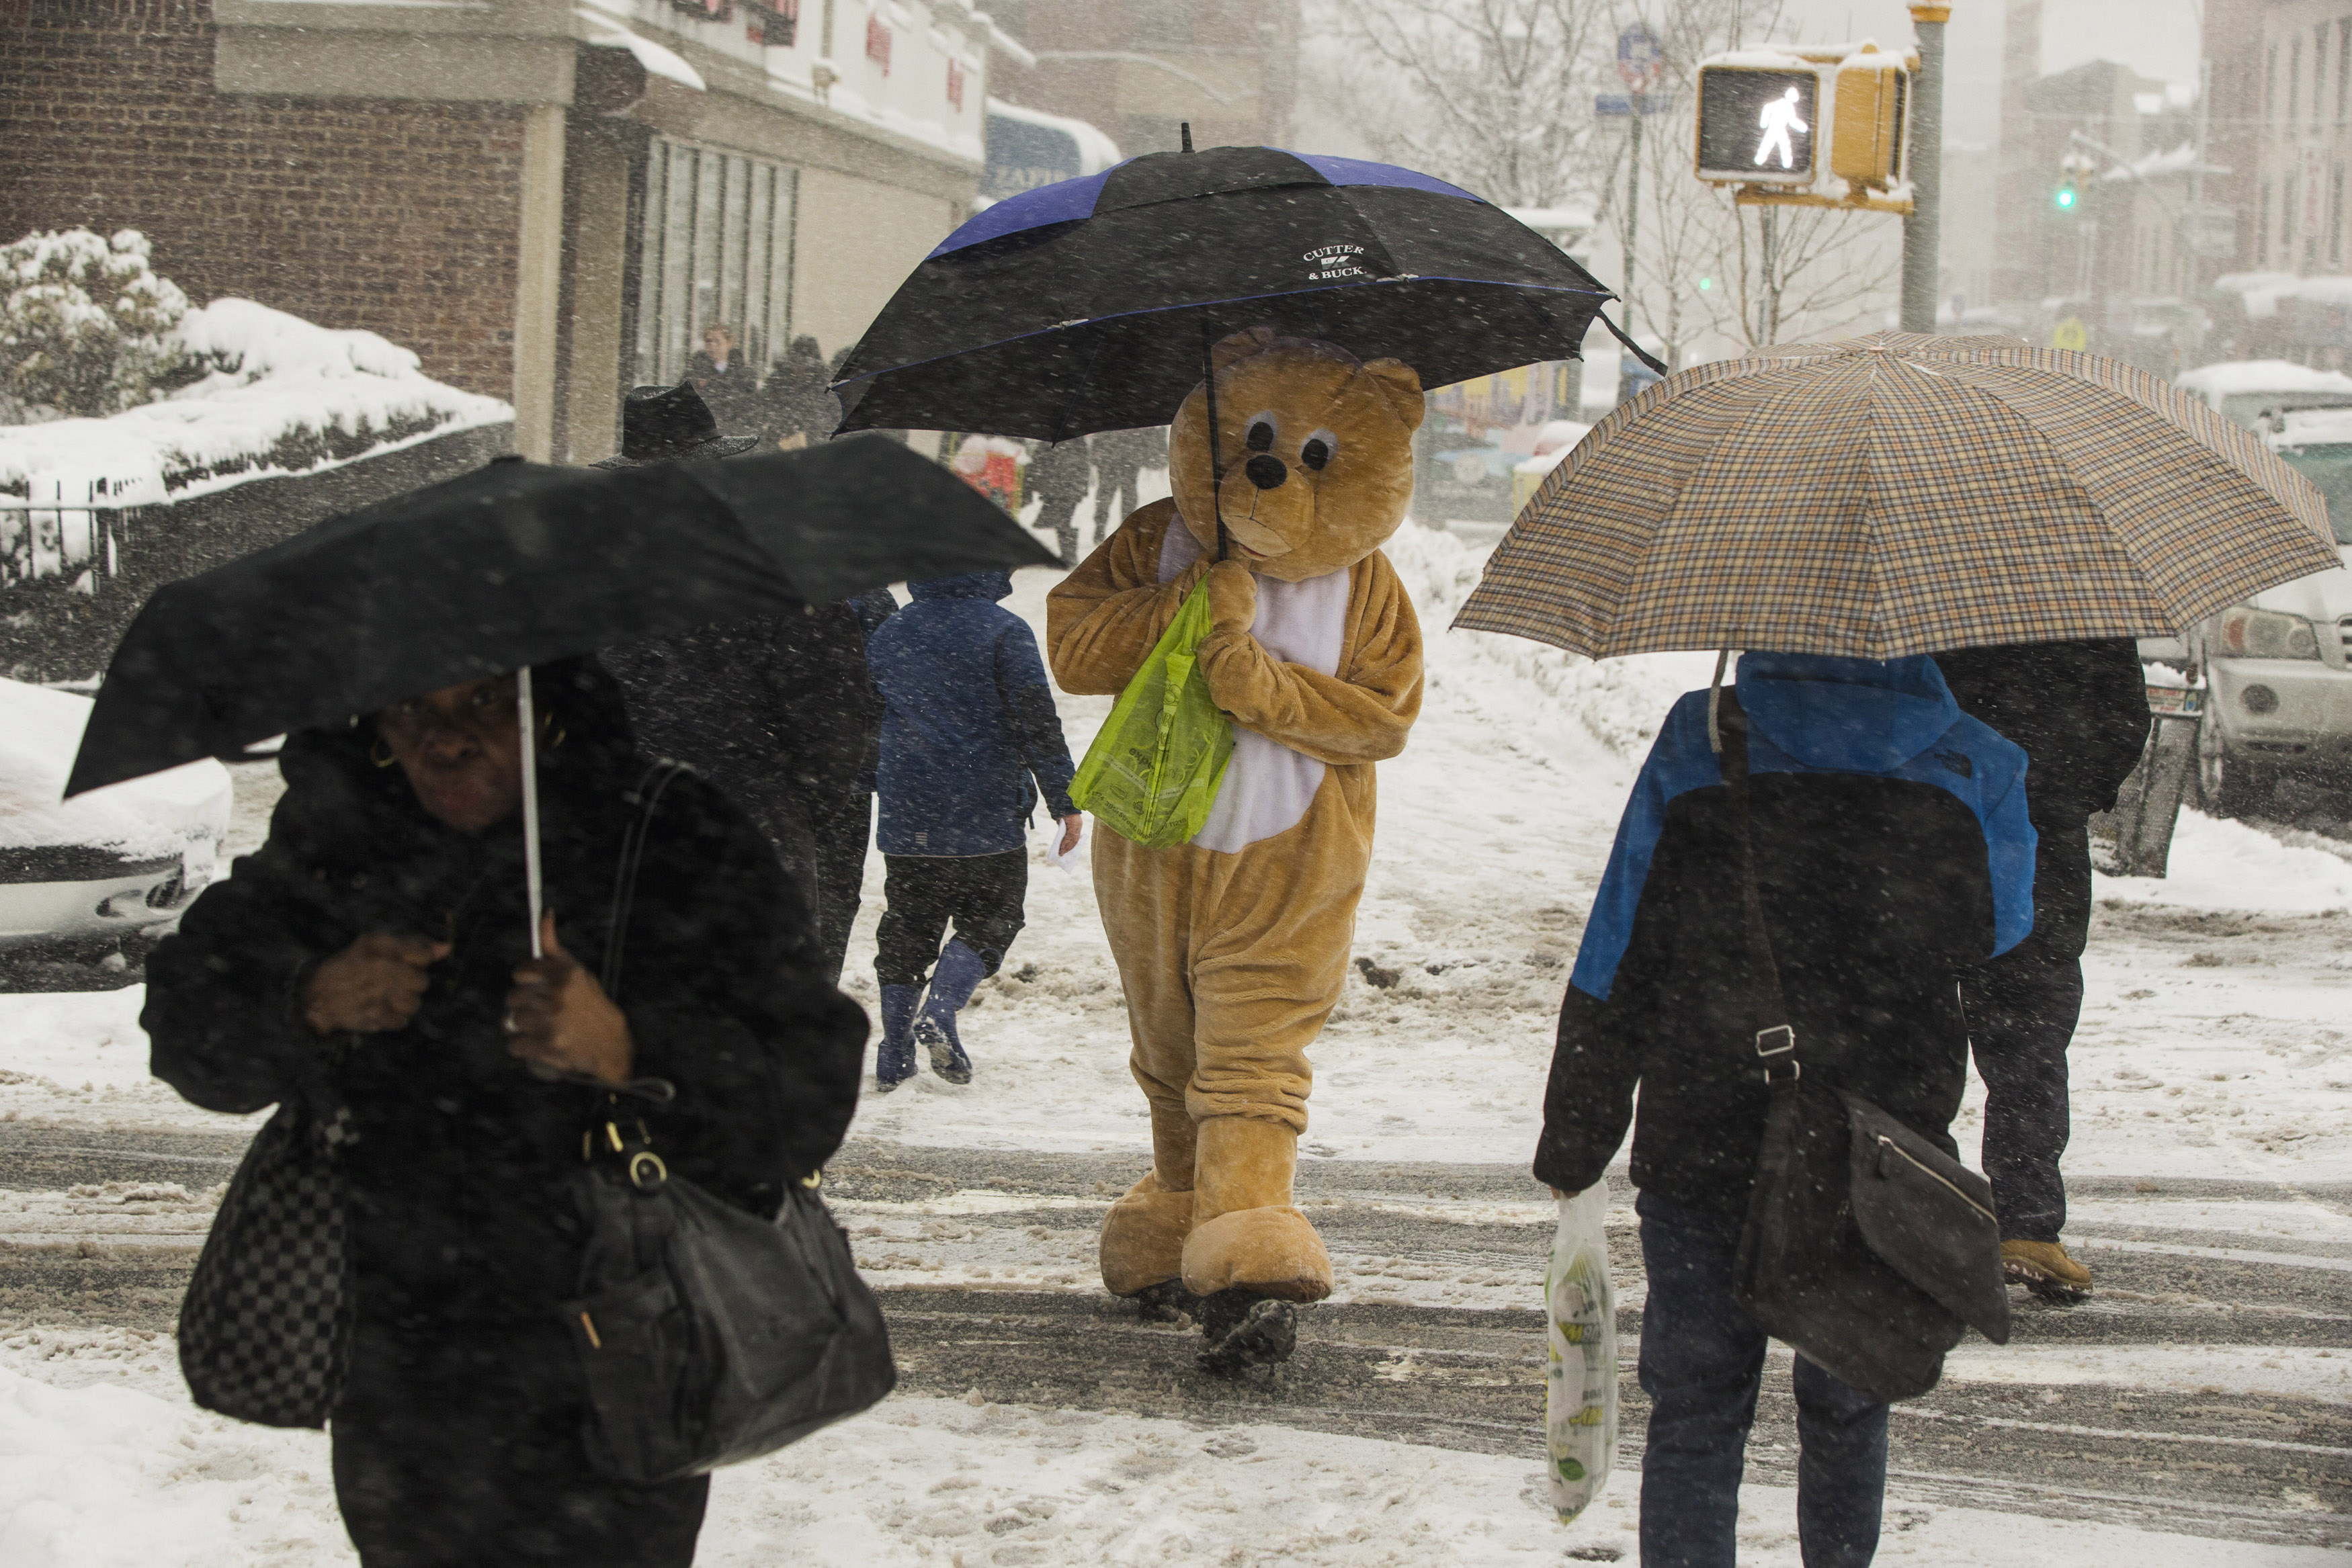 A pedestrian in an animal costume holds an umbrella while walking in a snowstorm in New York March 5, 2015. REUTERS/Lucas Jackson